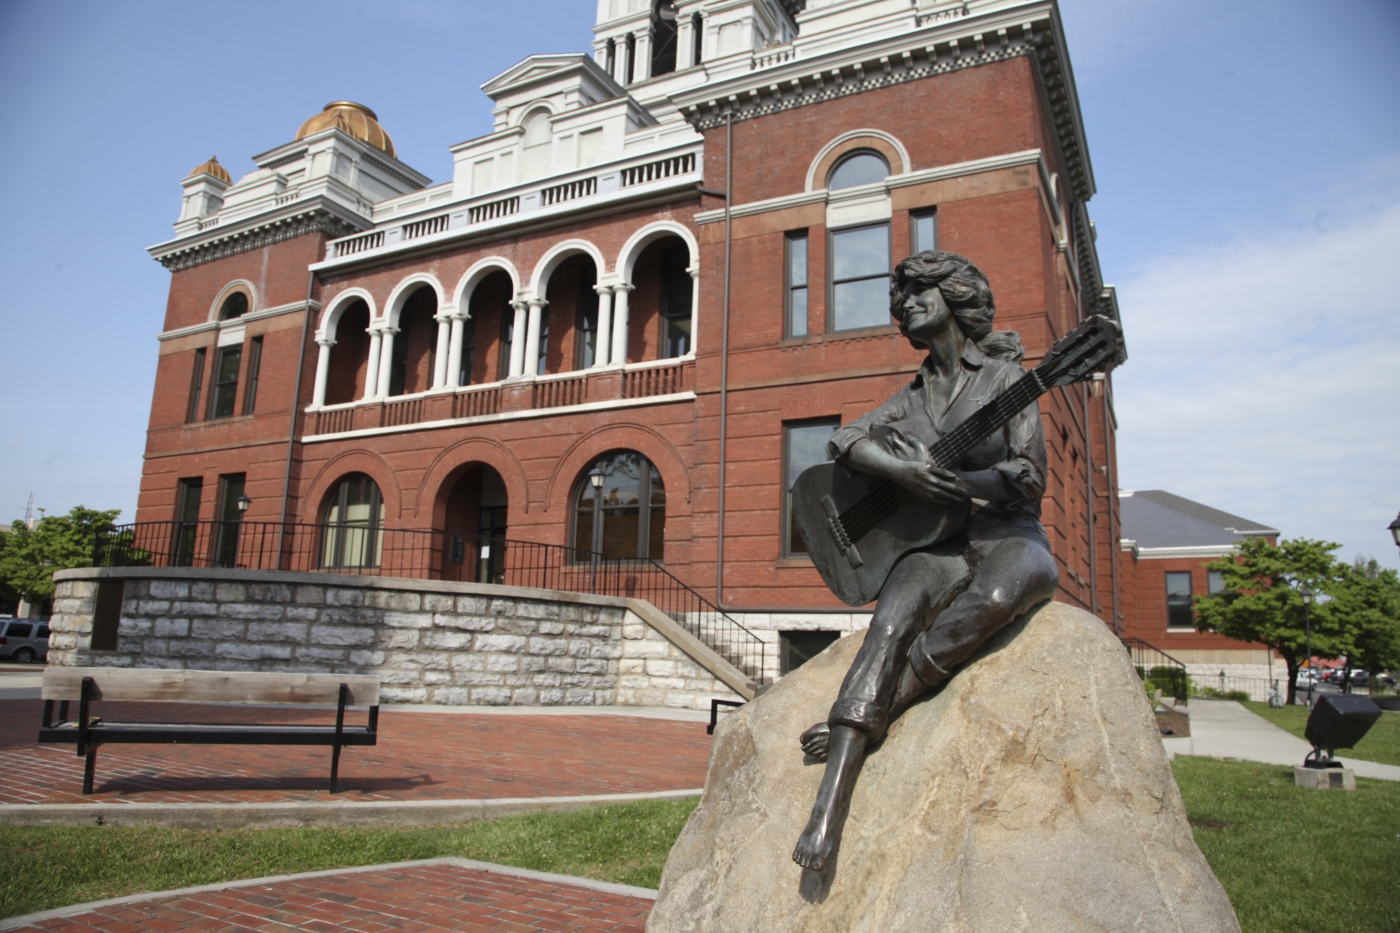 Statue of the great Dolly Parton.